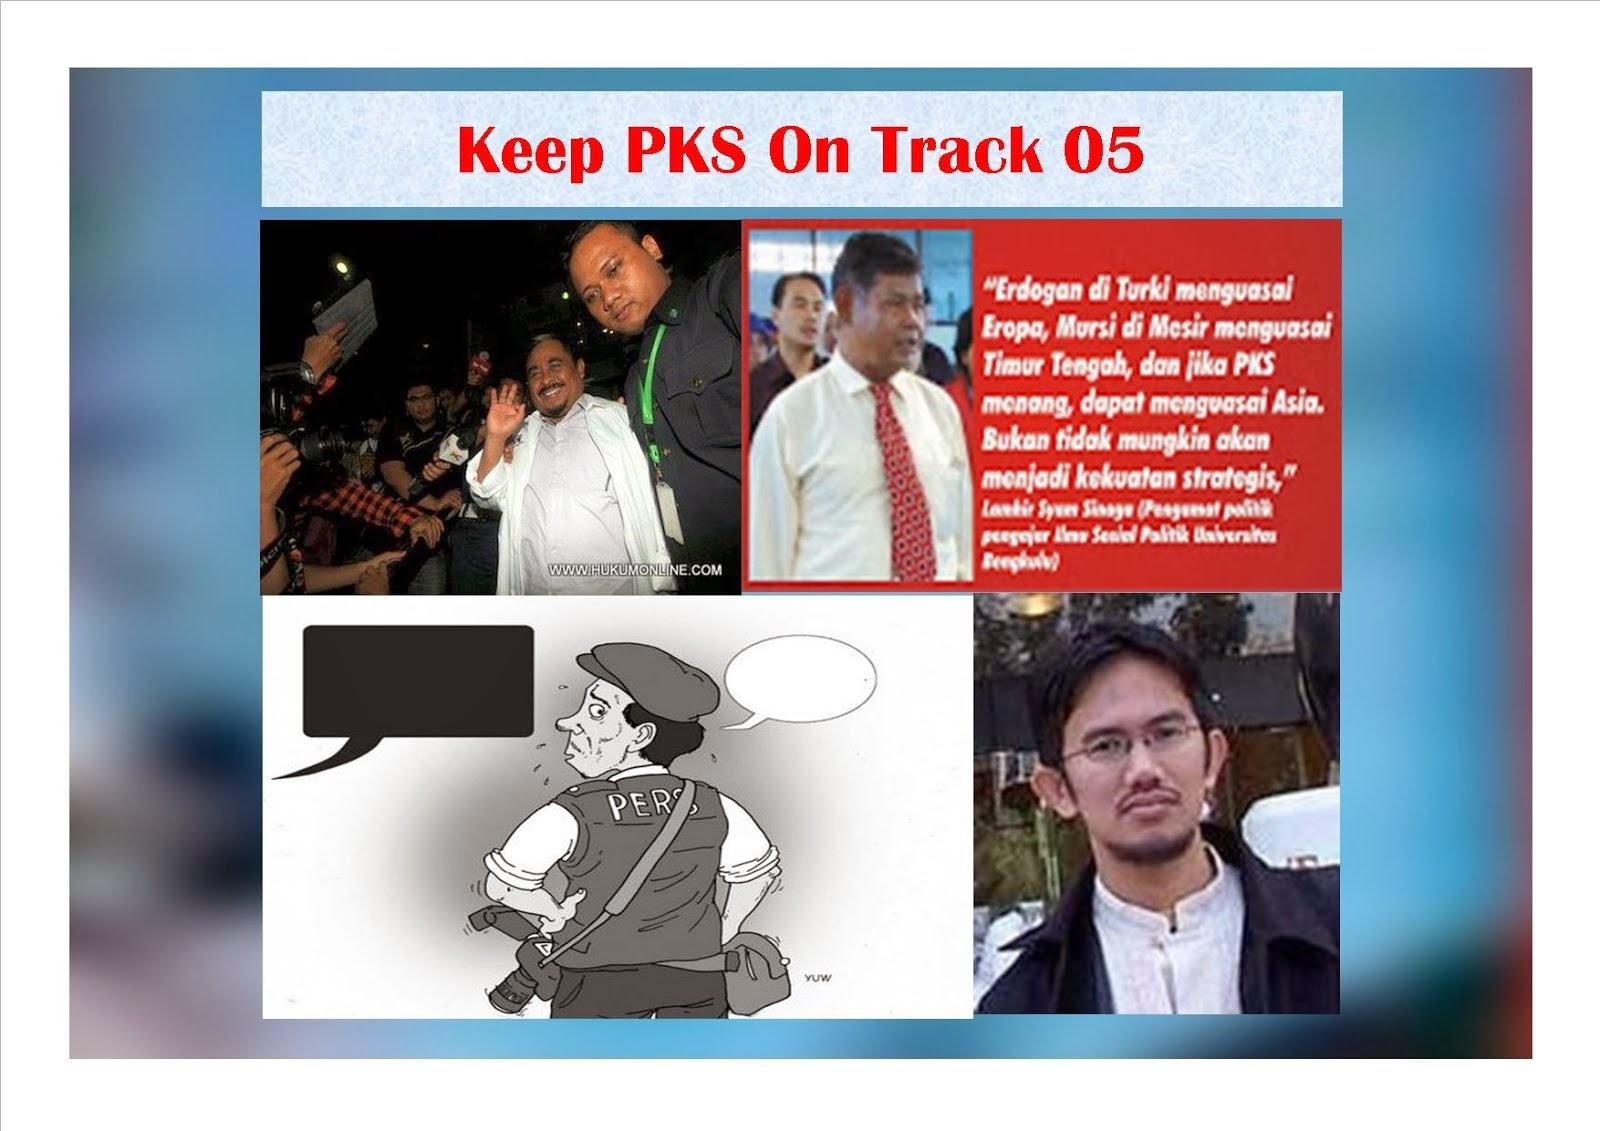 Keep PKS on Track 05